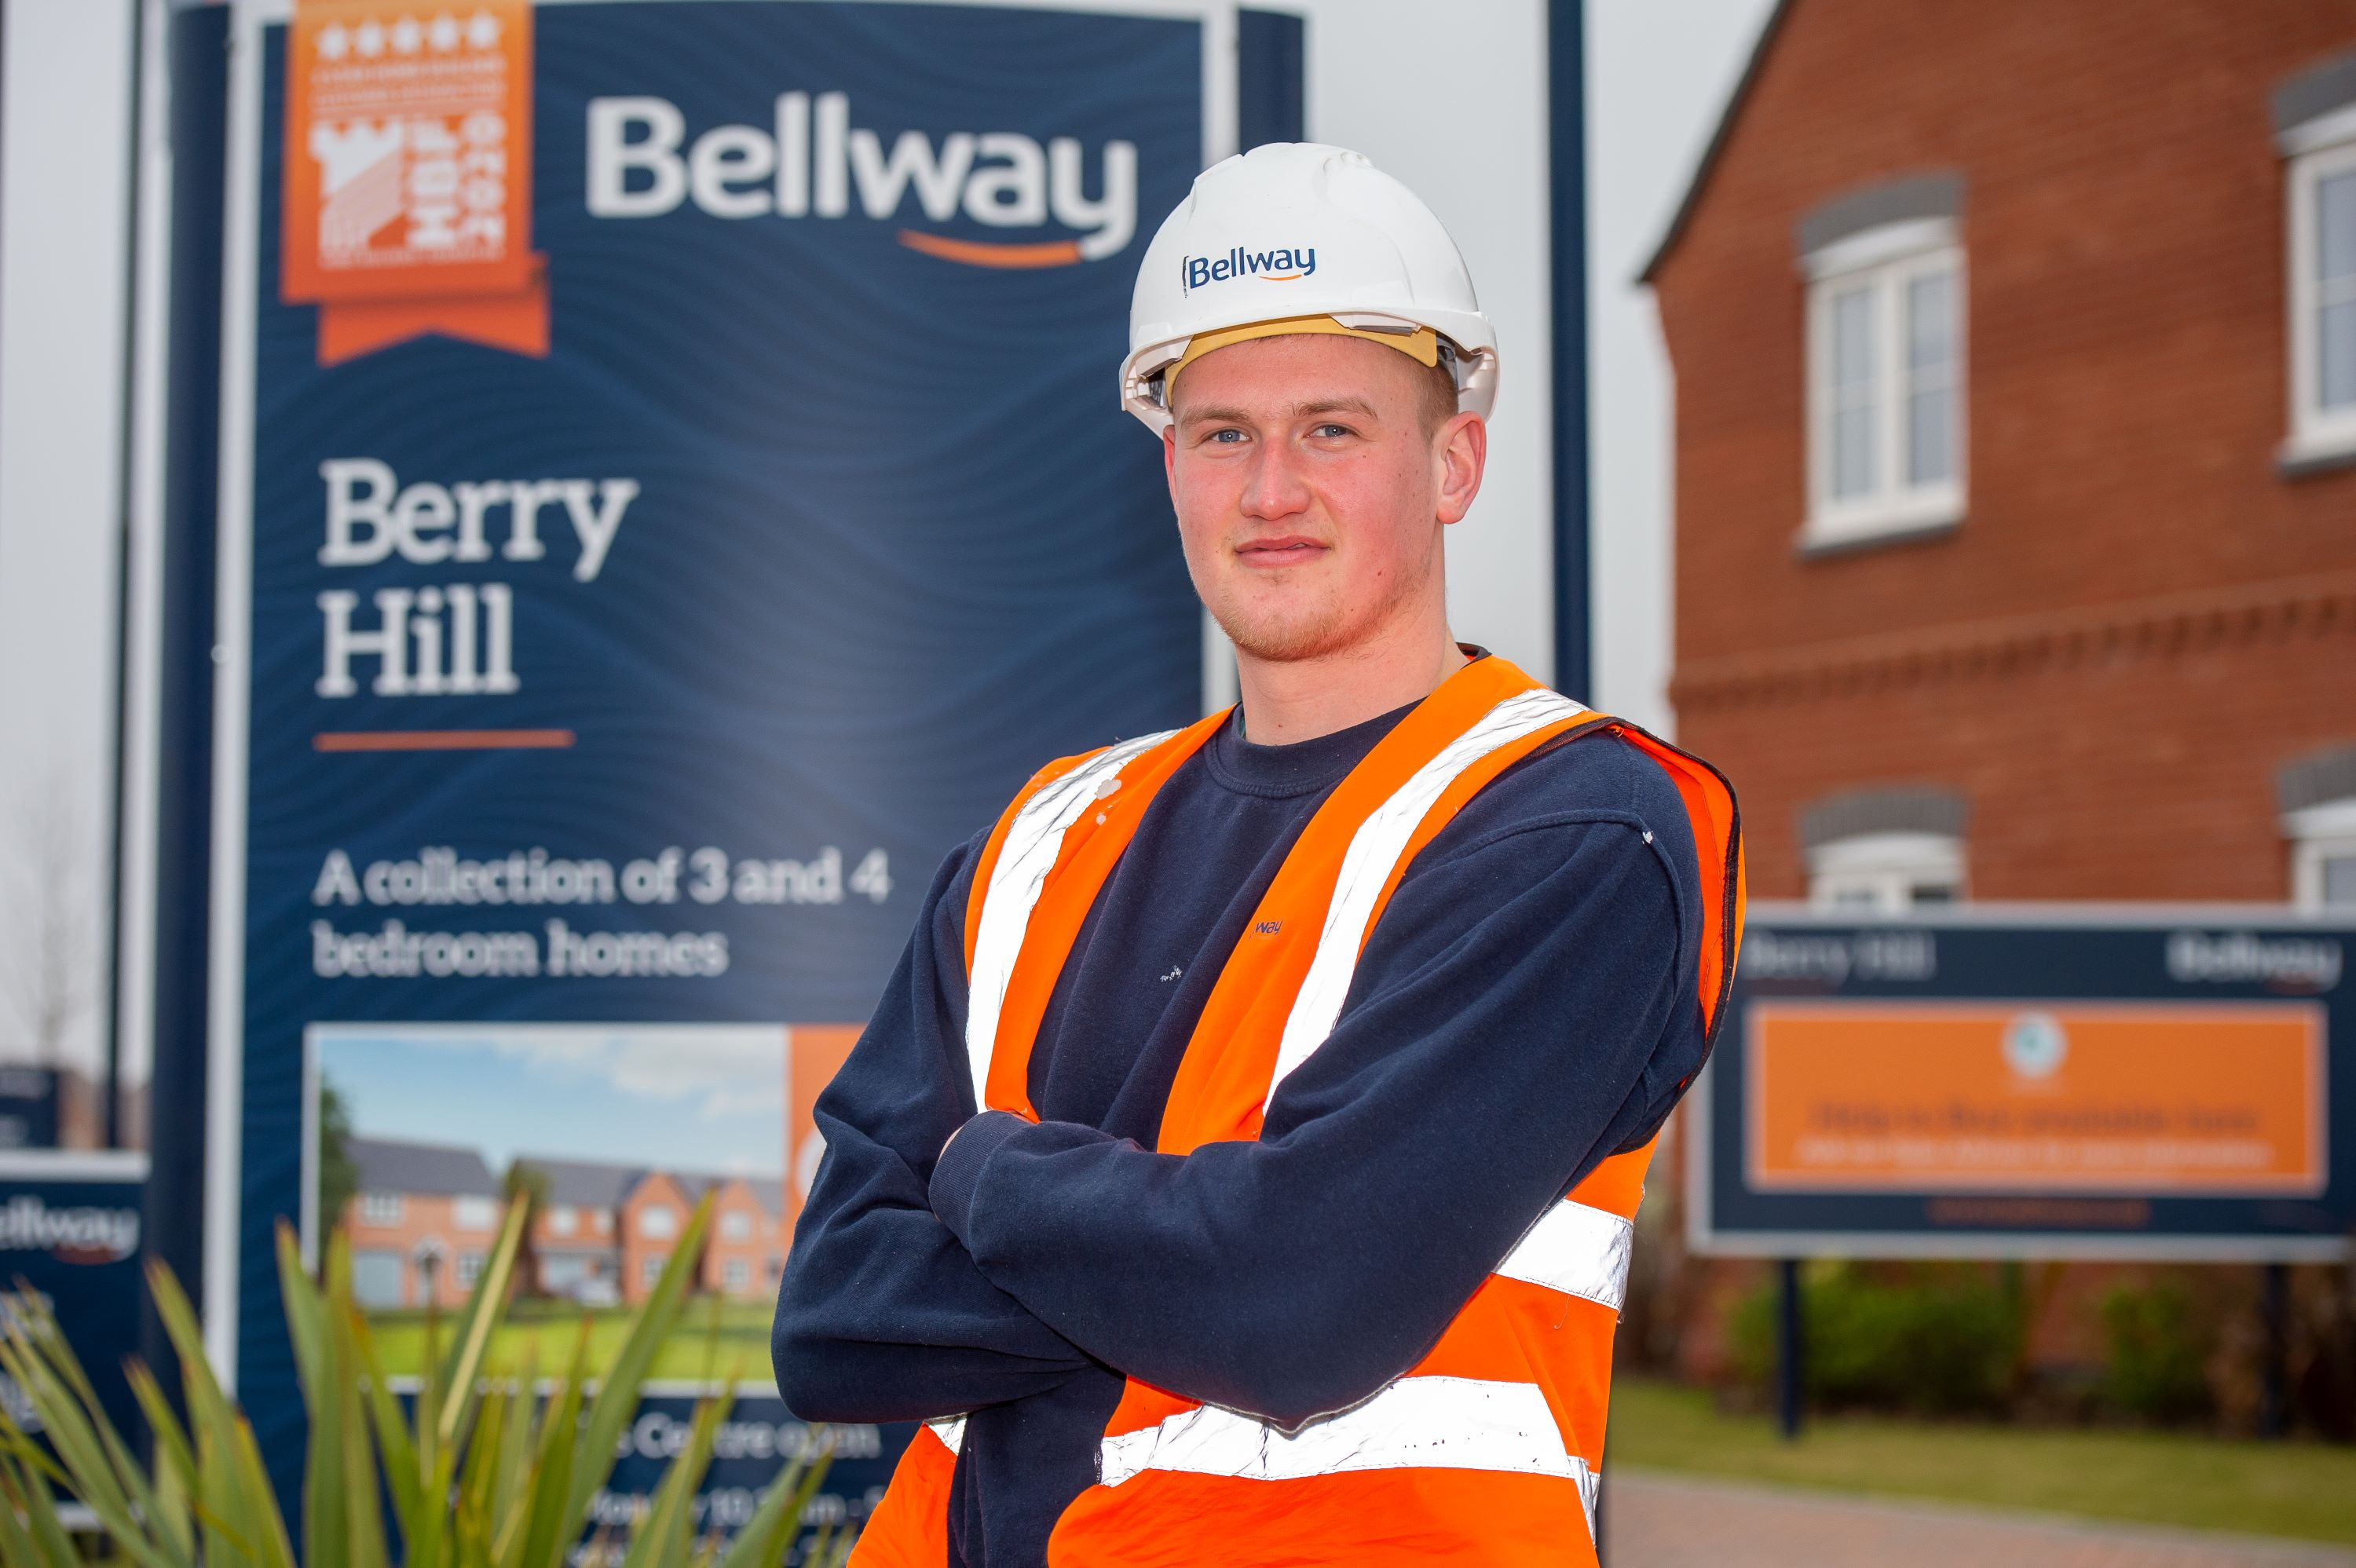 Apprentice joiner wins top accolade with national housebuilder